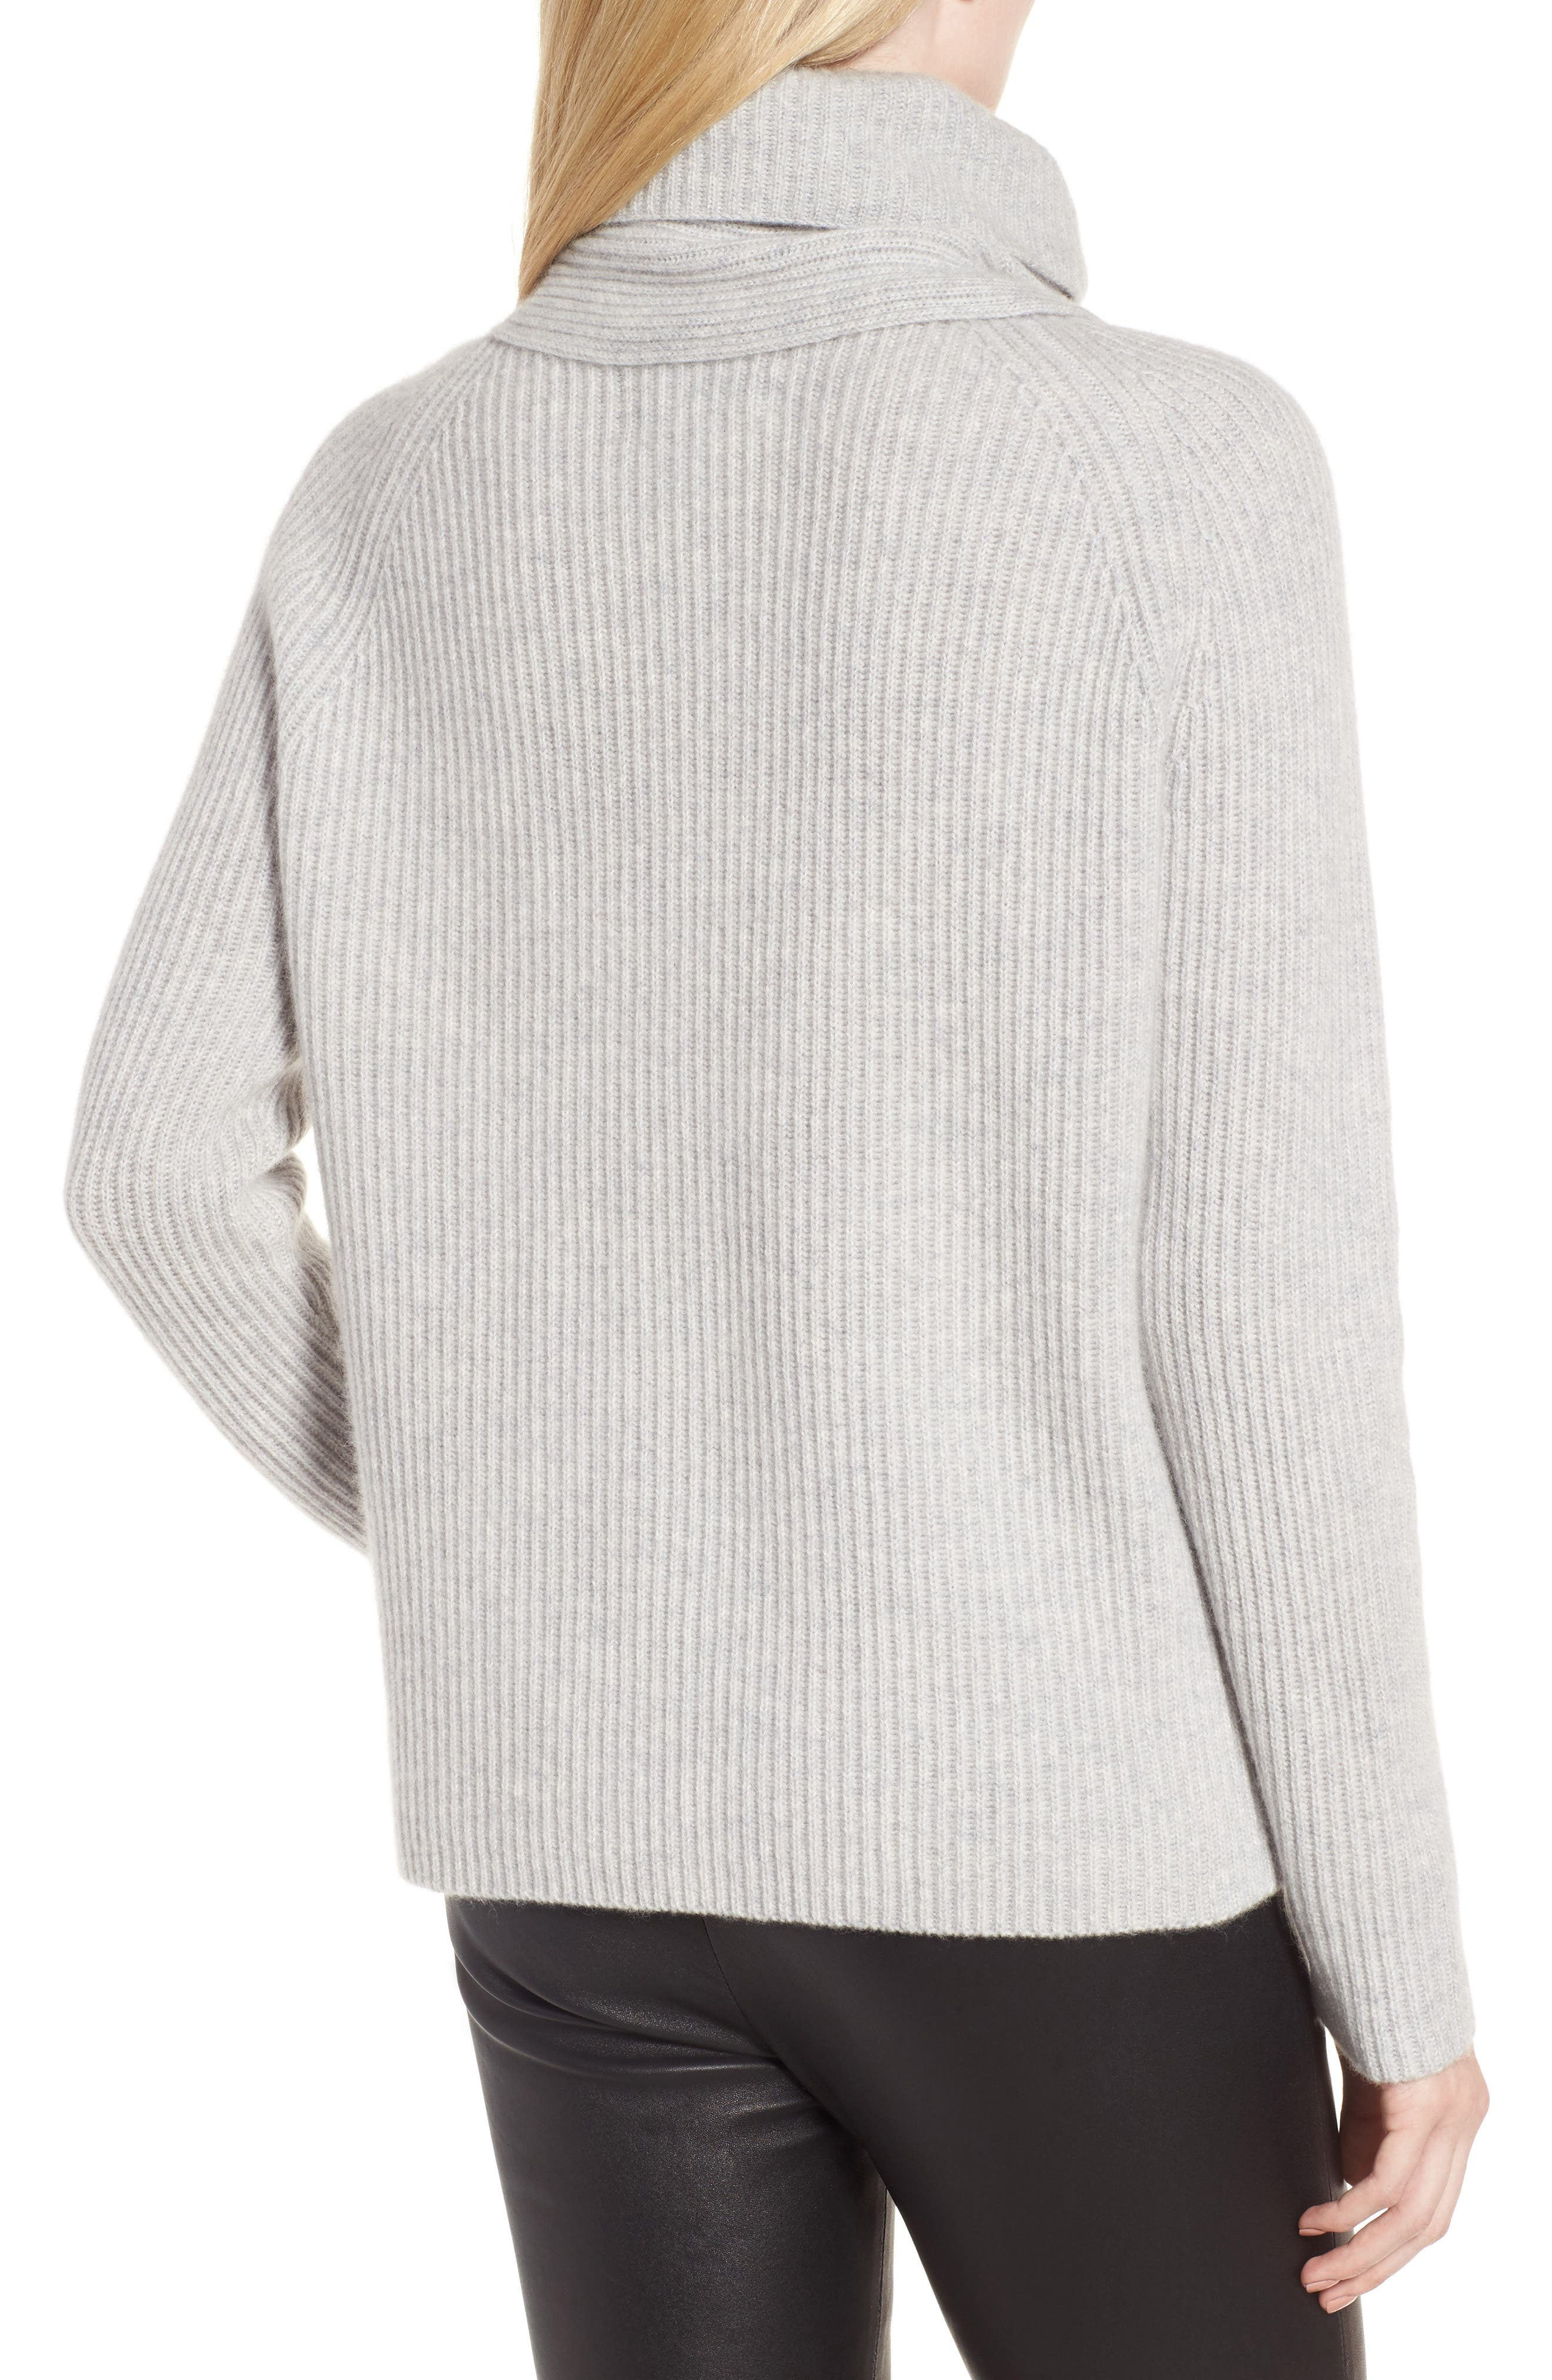 Scarf Neck Cashmere Sweater,                             Alternate thumbnail 2, color,                             050